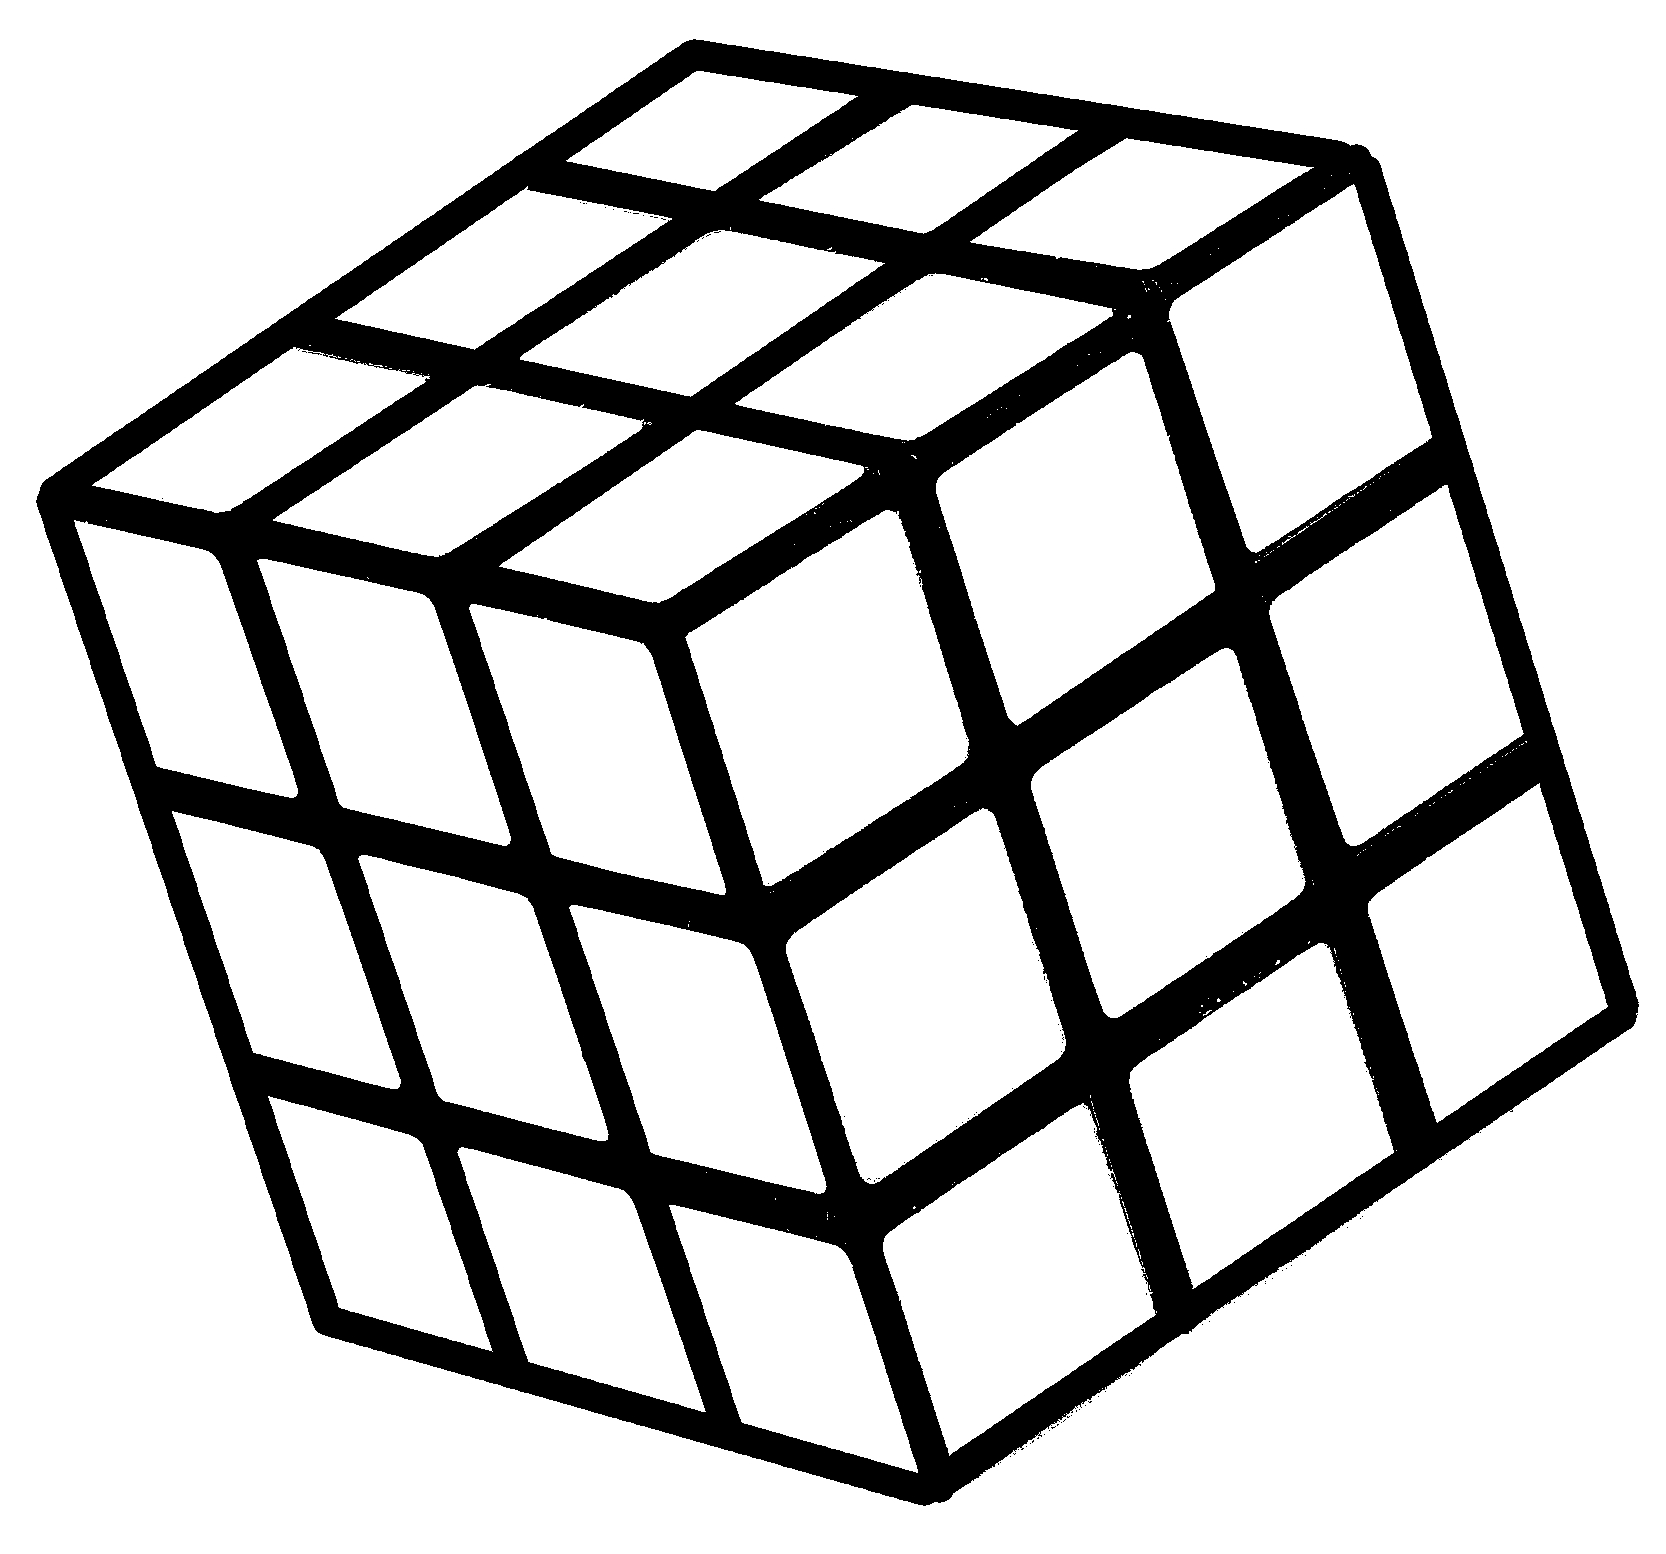 Rubiks Cube Coloring Pages